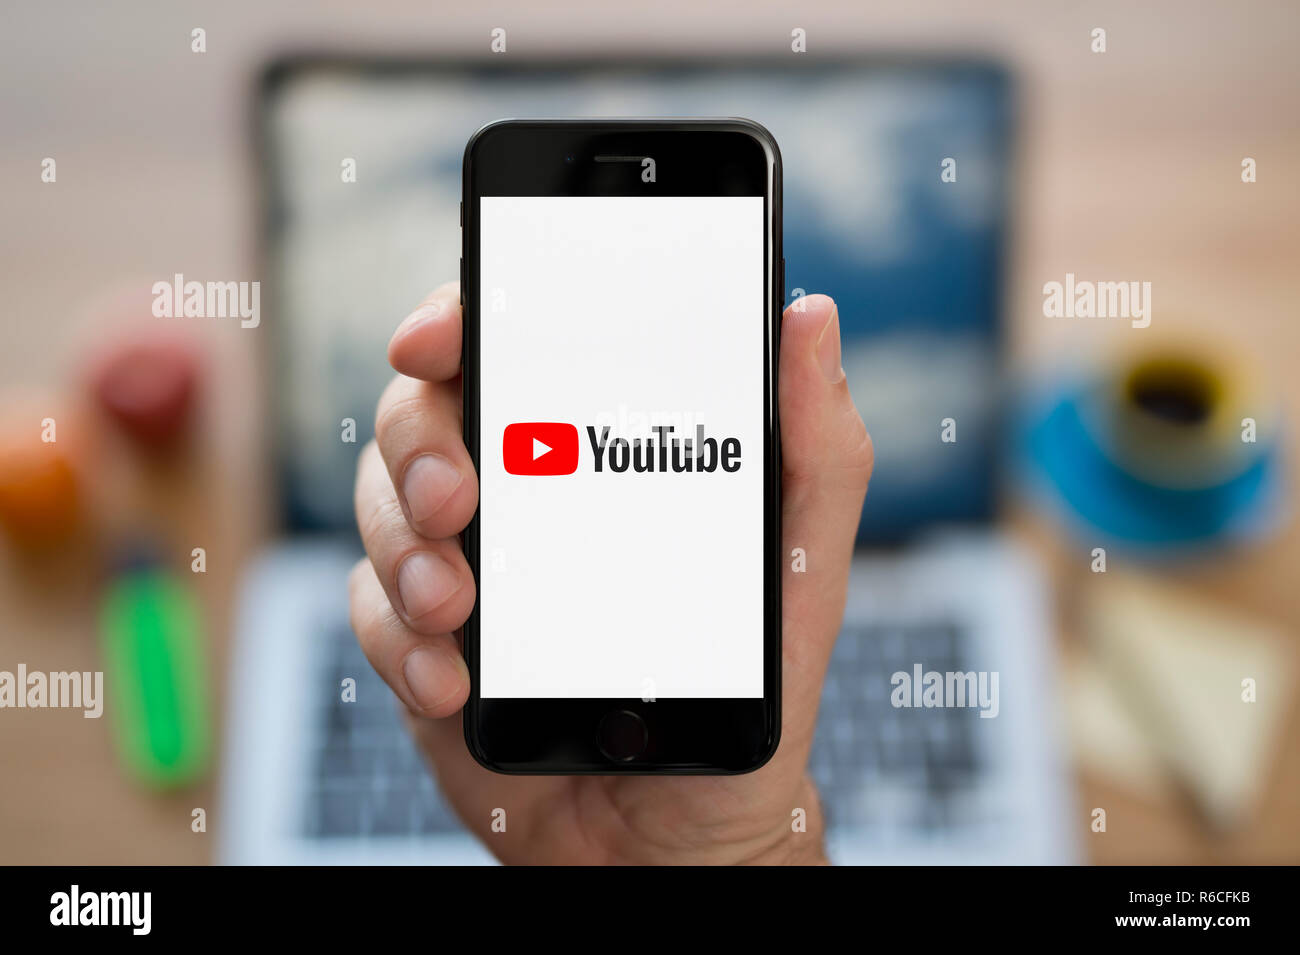 A Man Looks At His Iphone Which Displays The Youtube Logo While Sat